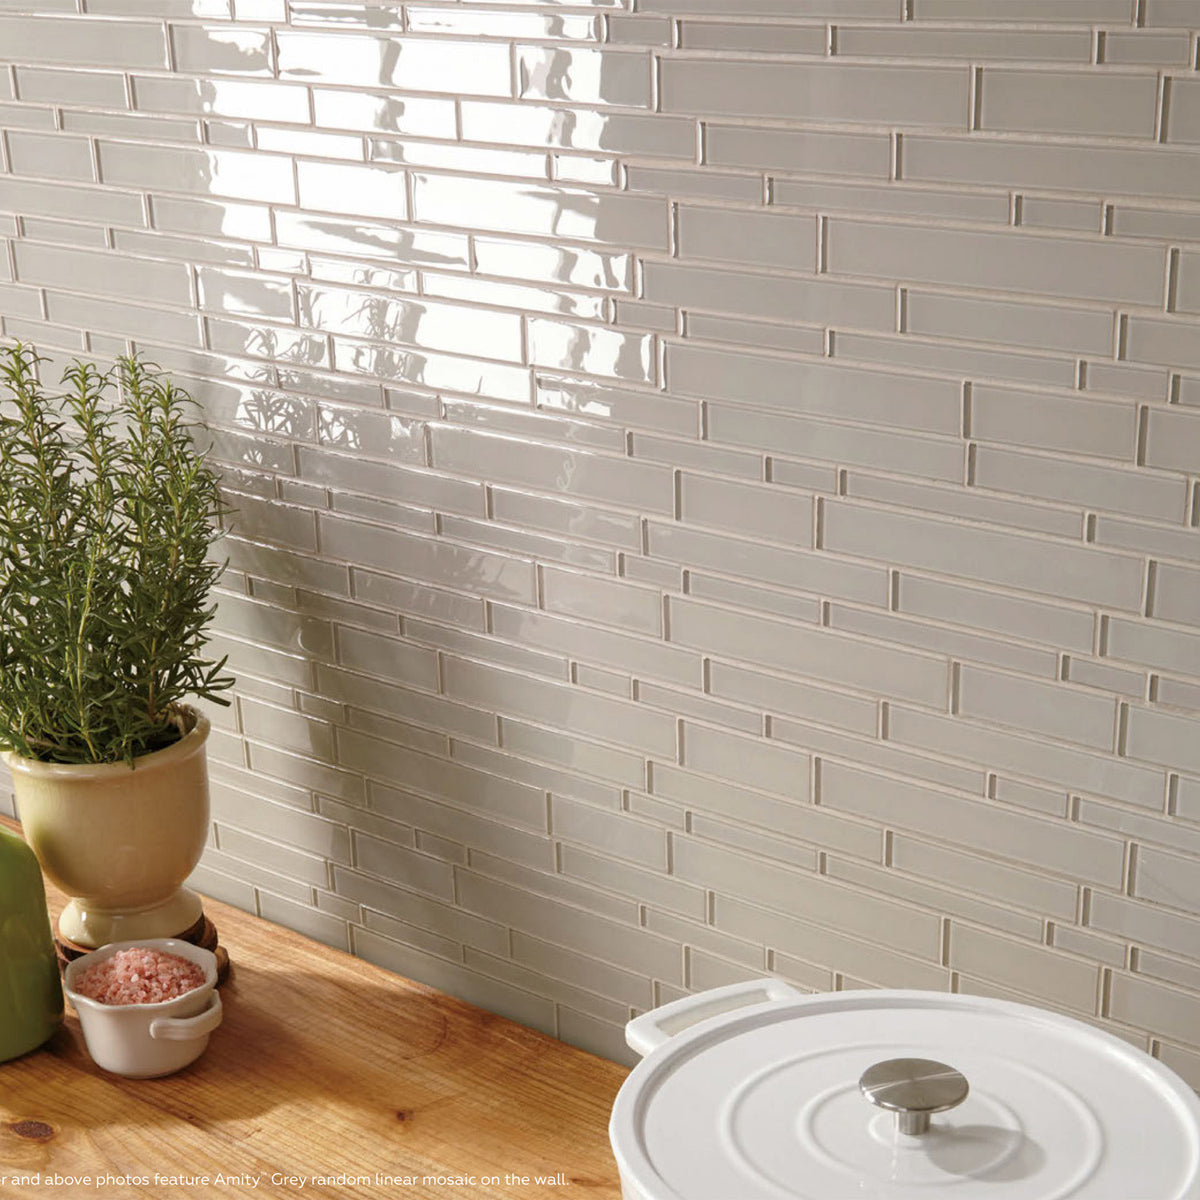 Daltile Amity Mosaic Wall Tile Lifestyle